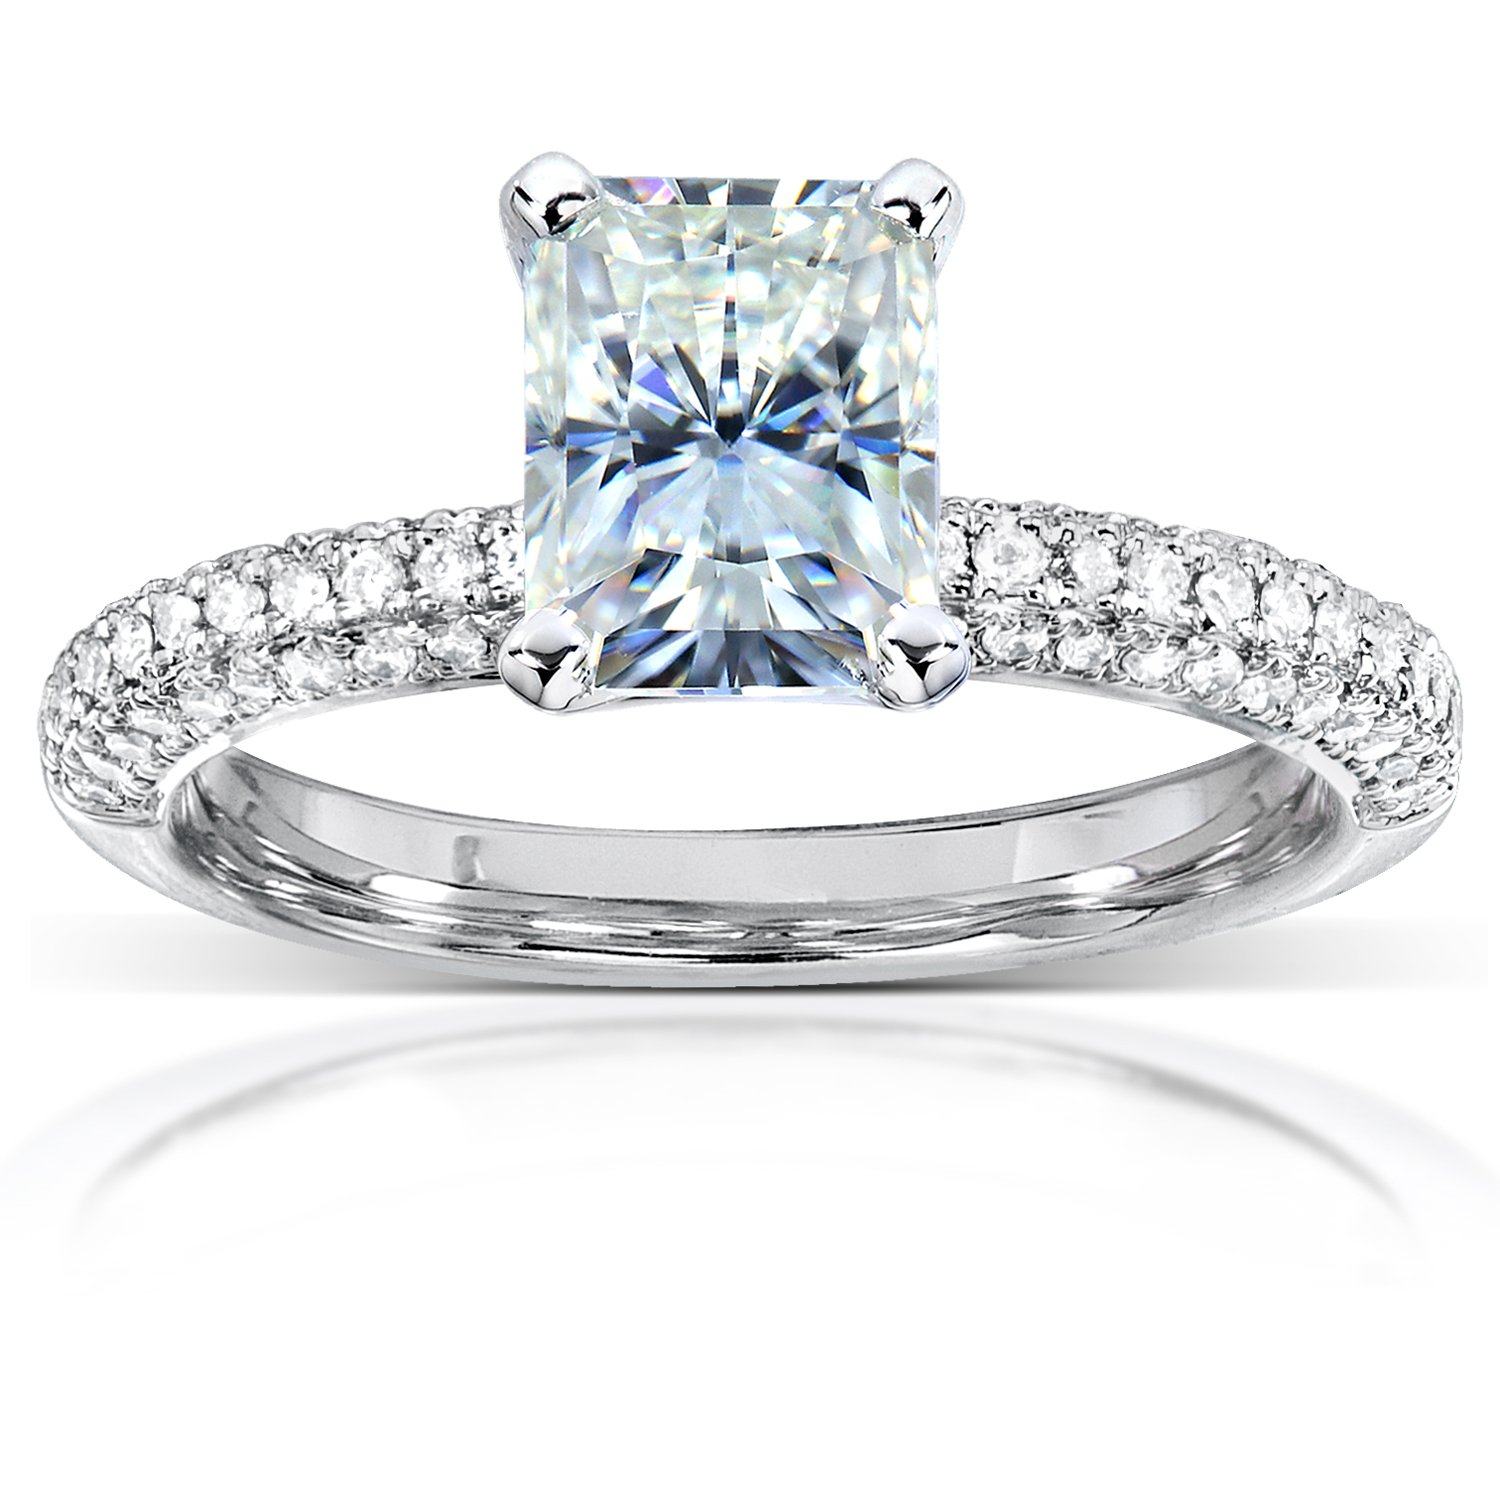 Radiant-cut Moissanite Engagement Ring with Micro-Pave Diamond 2 CTW 14k White Gold, Size 6